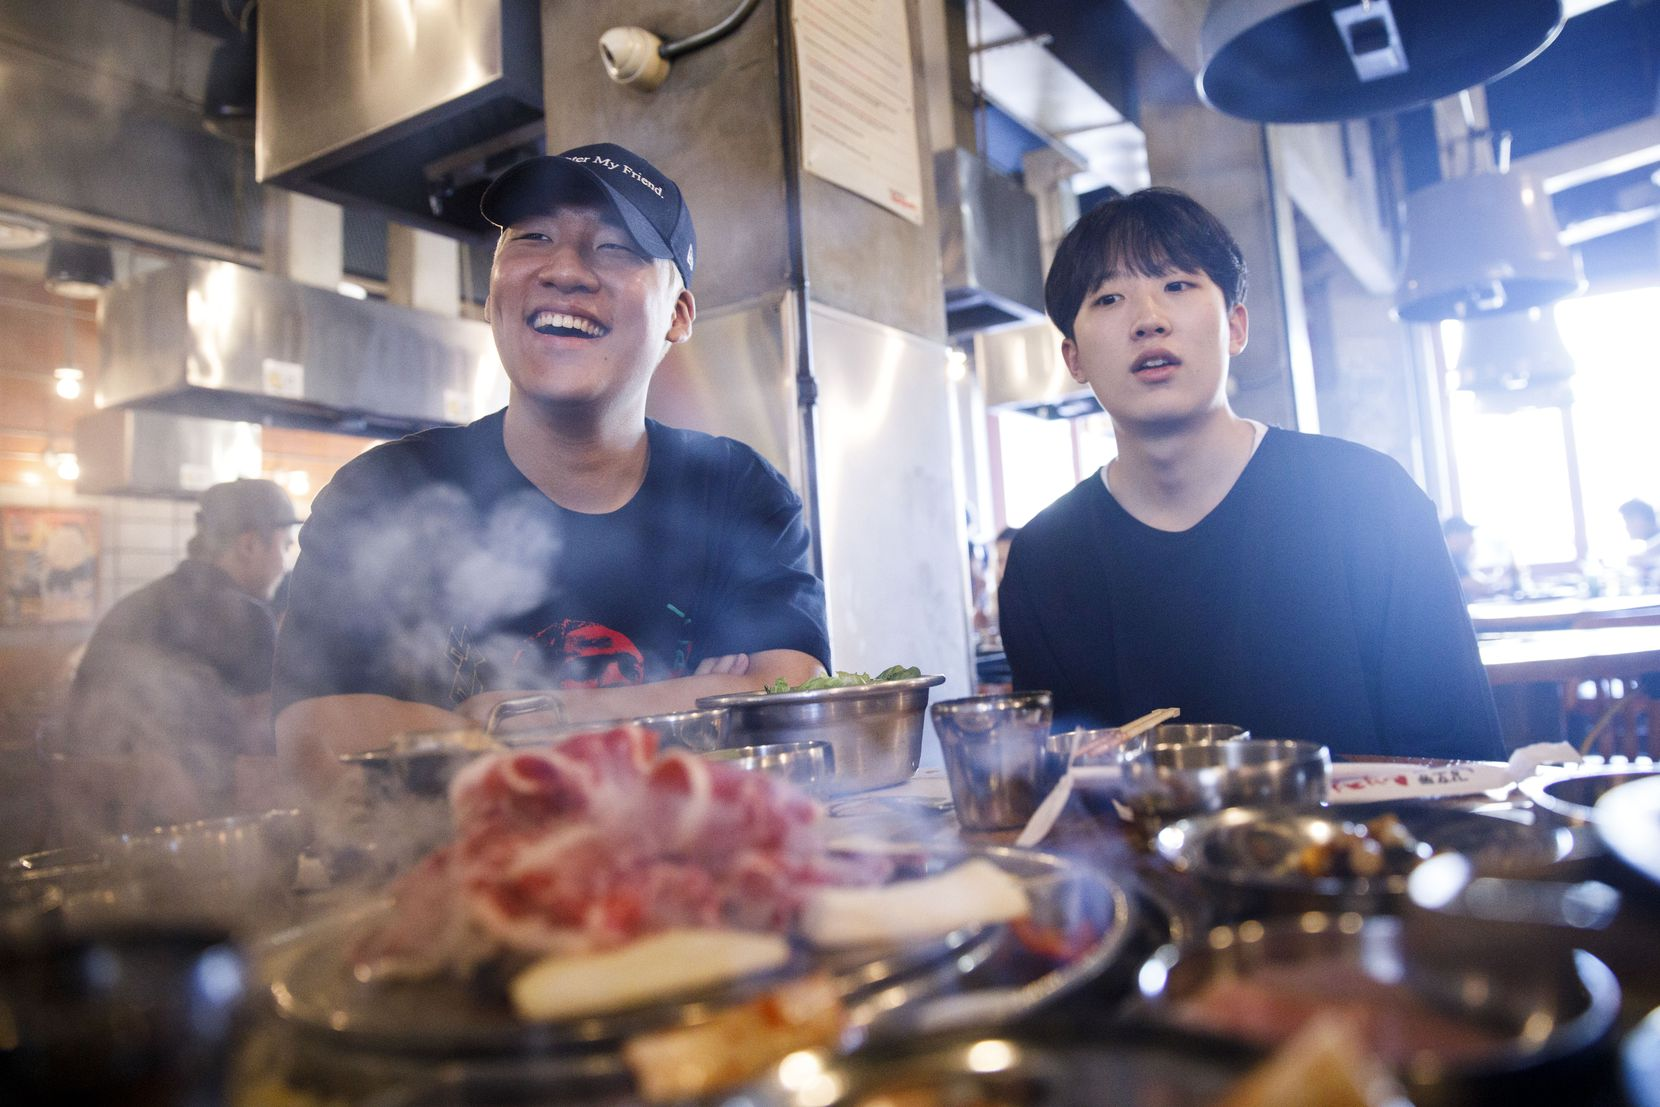 OGE, sitting in Los Angeles' Koreatown, laugs while friend Jeon Kyoung-Min, right, looks on.